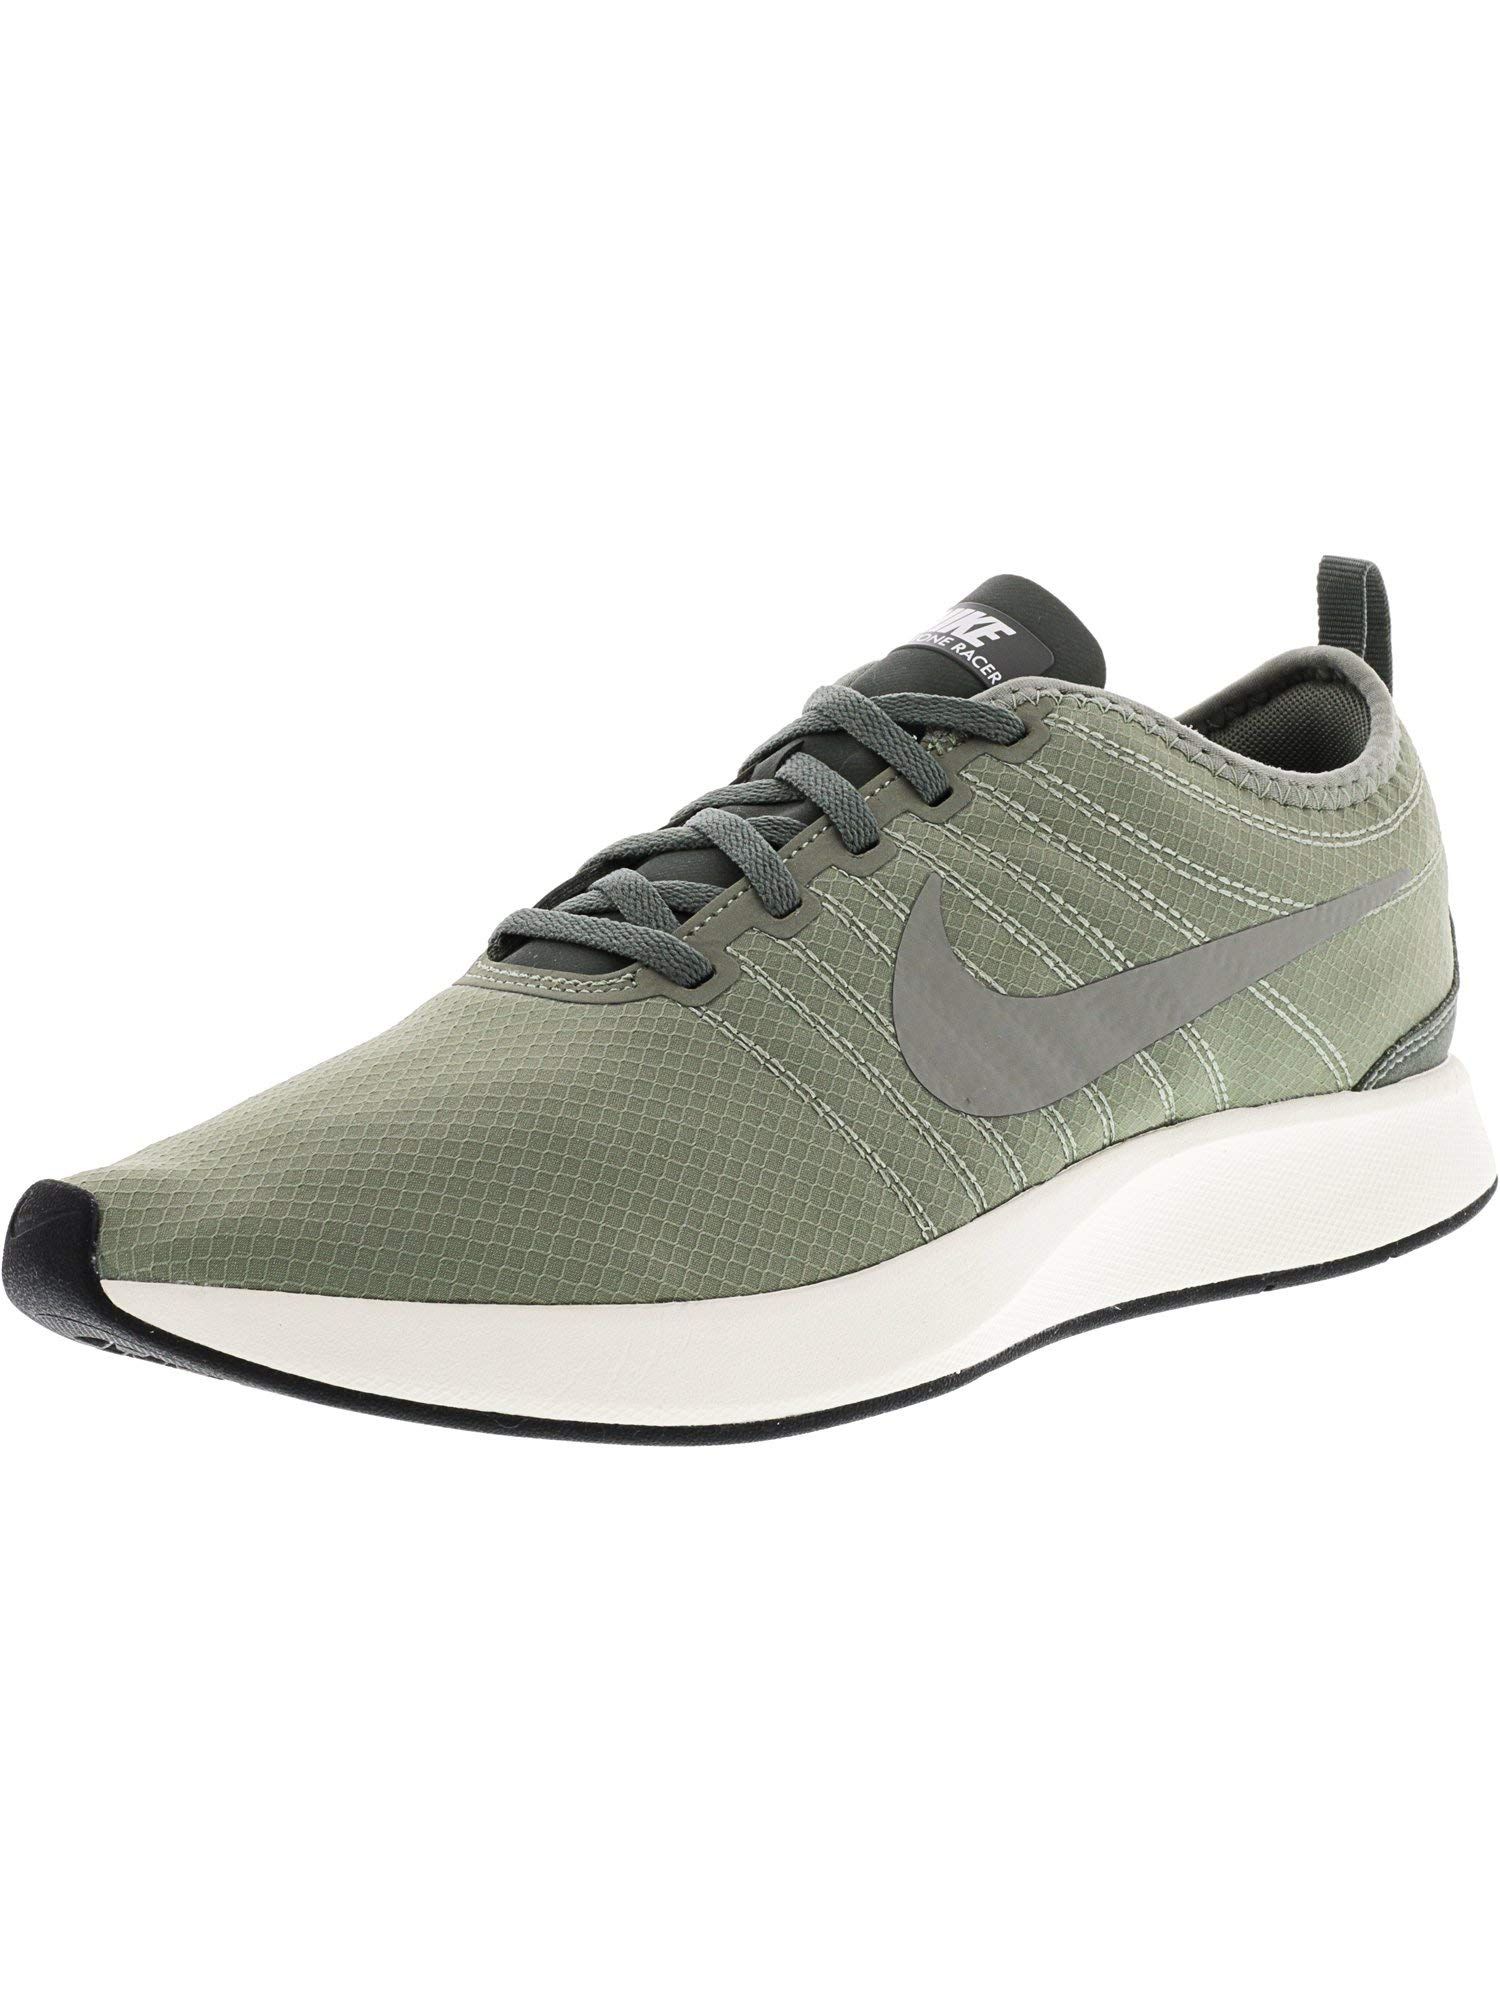 9296f6286 Galleon - Nike Men's Dualtone Racer Se Dark Stucco/River Rock Ankle-High  Running Shoe - 10M